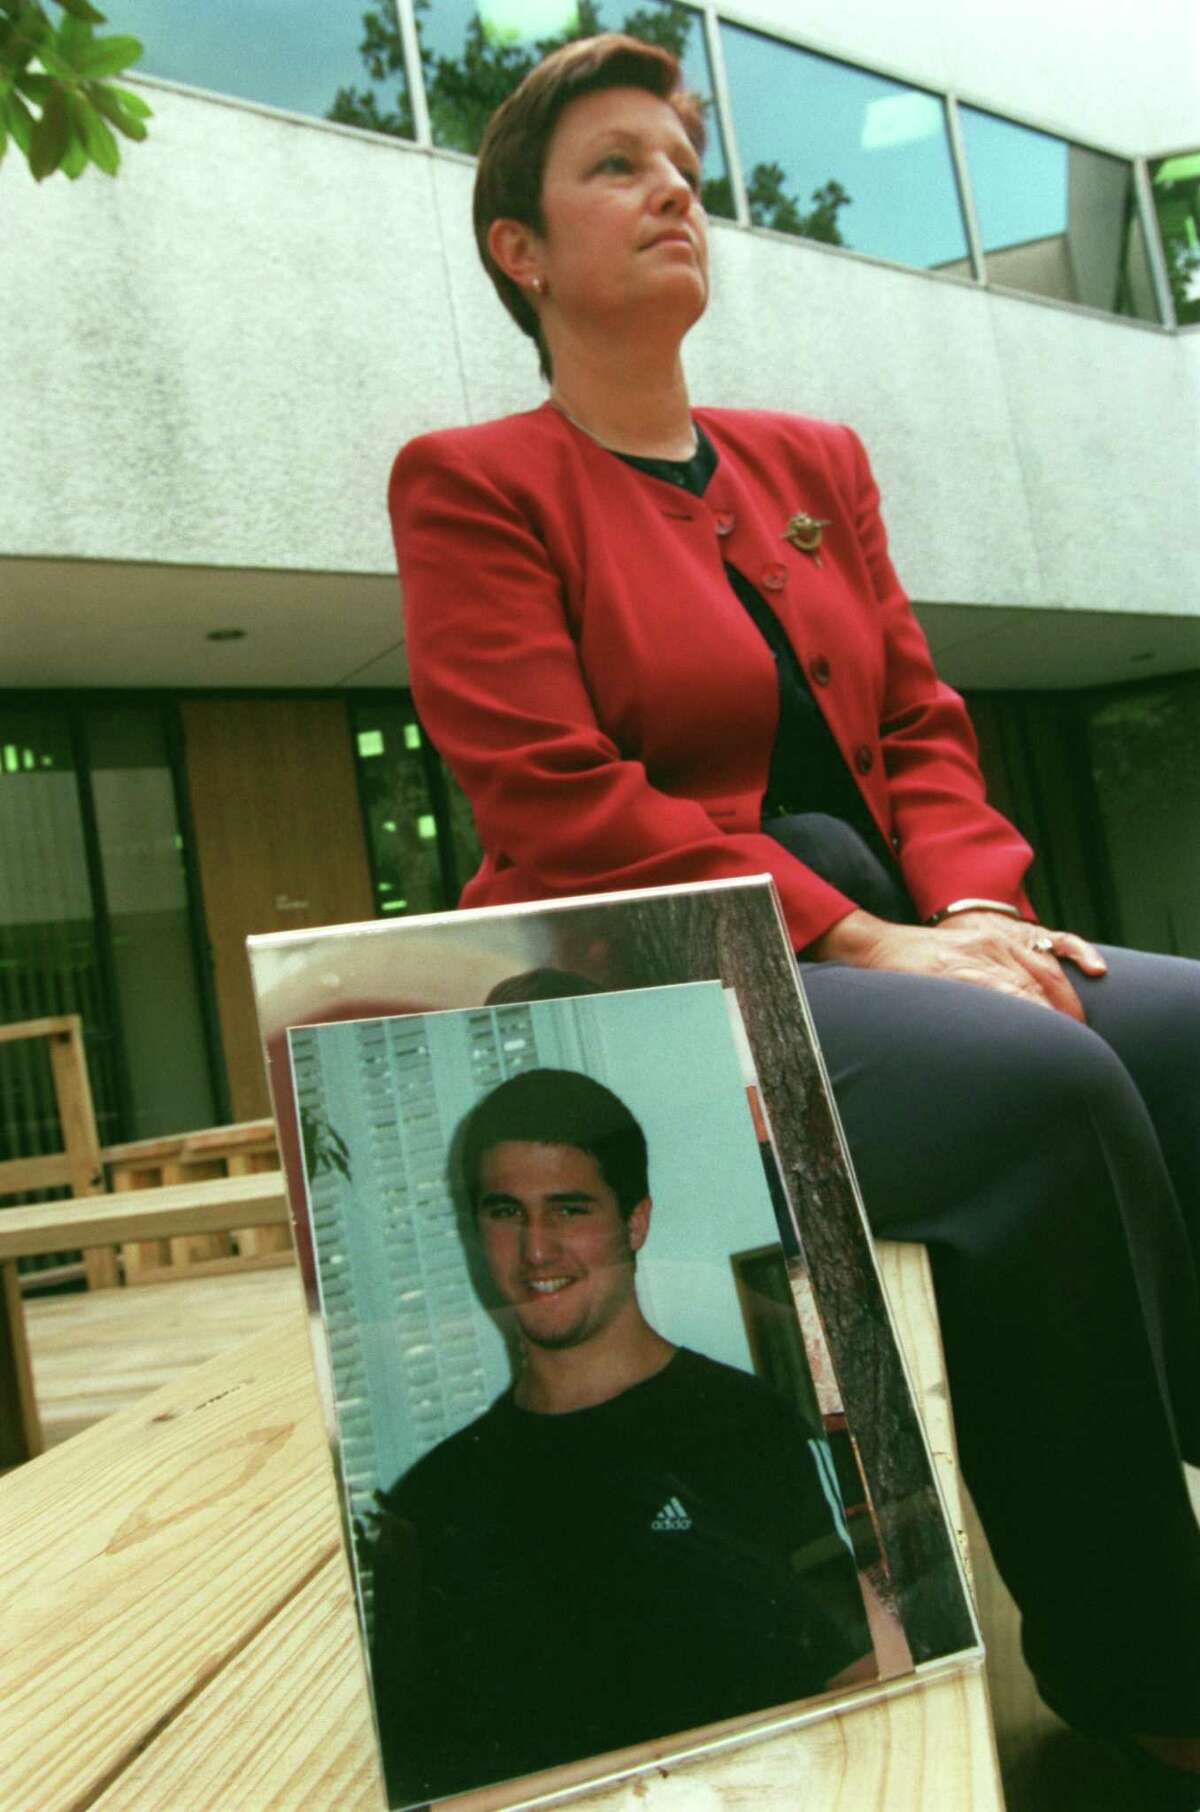 Doreen Wise founded the Texas Center for the Missing in 2000 after her son, Gabriel Lester, disappeared from his private high school in Austin.